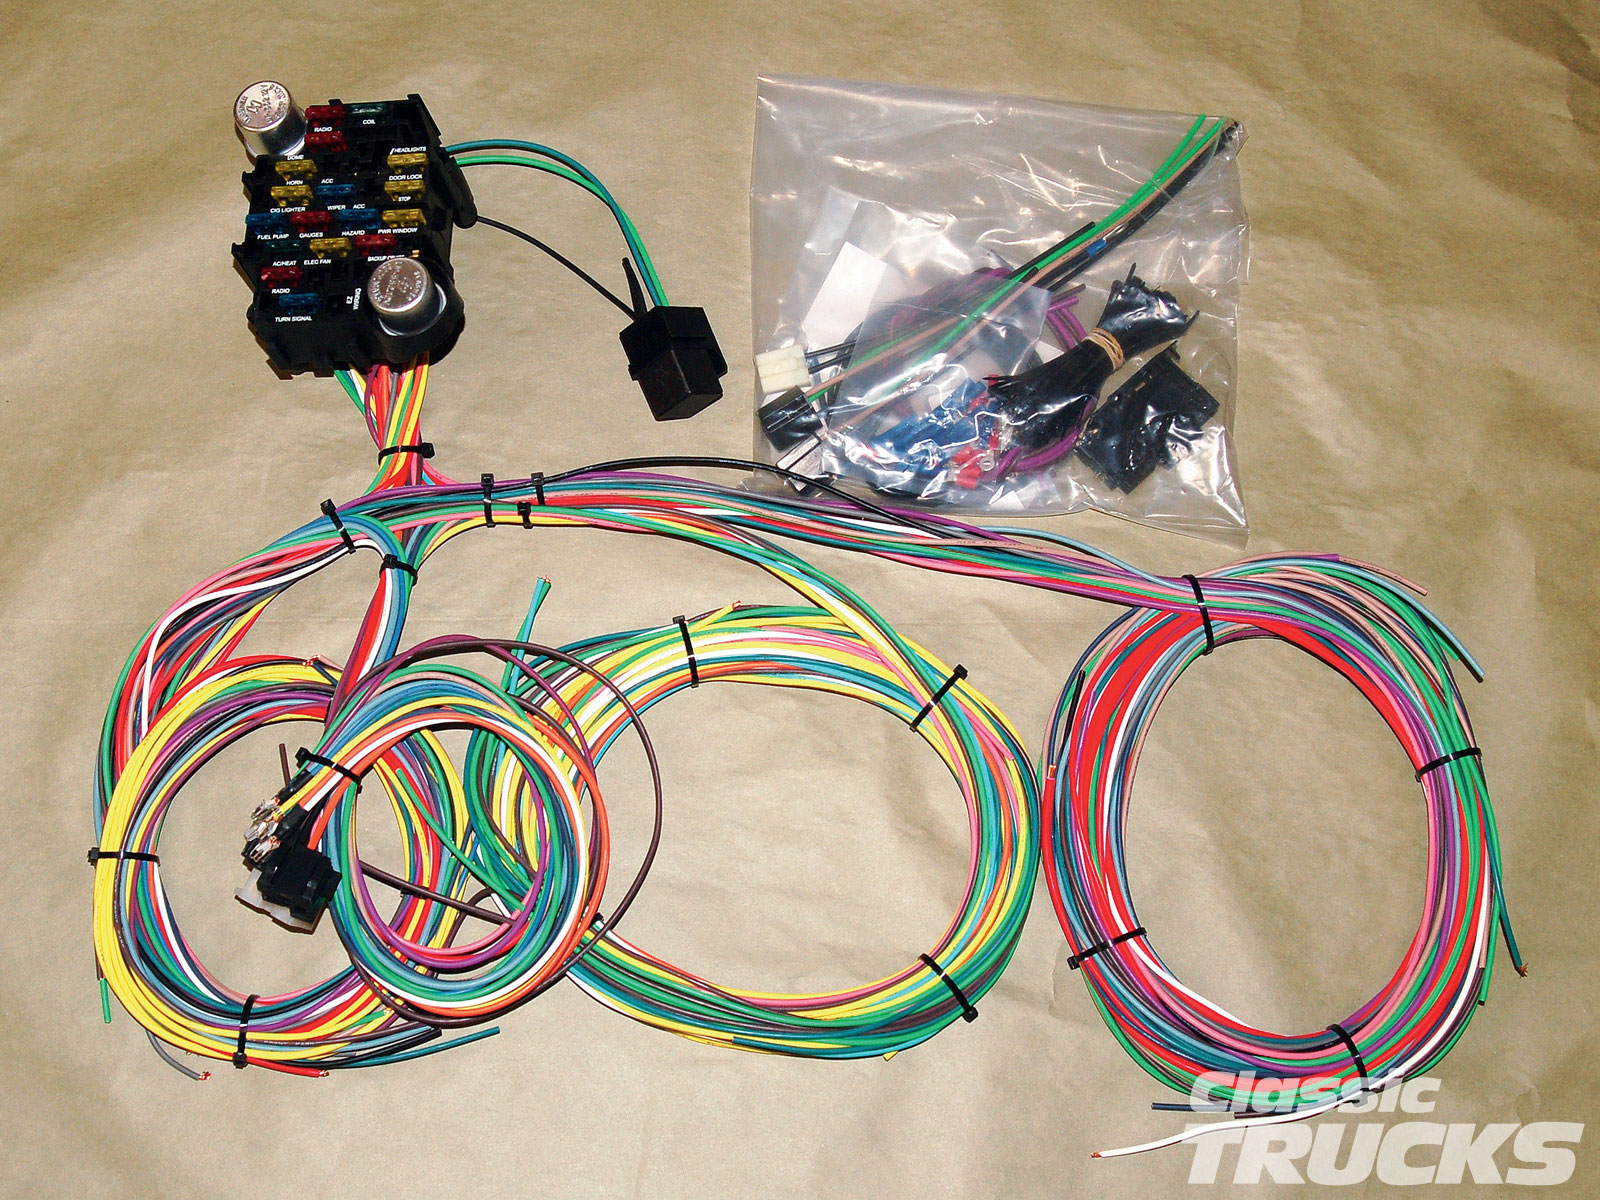 1010clt 02 o aftermarket wiring harness install kit?resize=640%2C480 diy wiring harness hobbiesxstyle diy wiring harness at bayanpartner.co